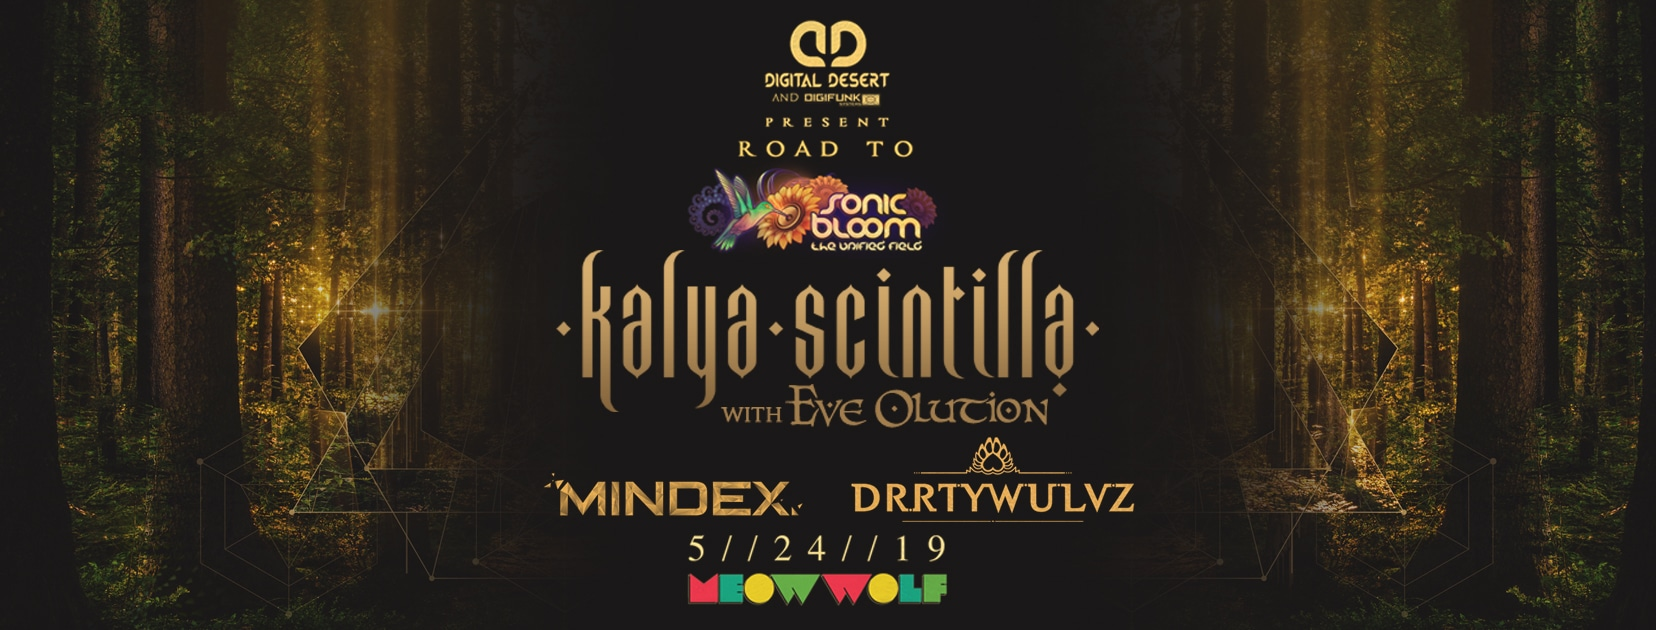 Road to SONIC BLOOM Kalya Scintilla with Eve Olution: Presented by Digital Desert & DigiFunk Systems